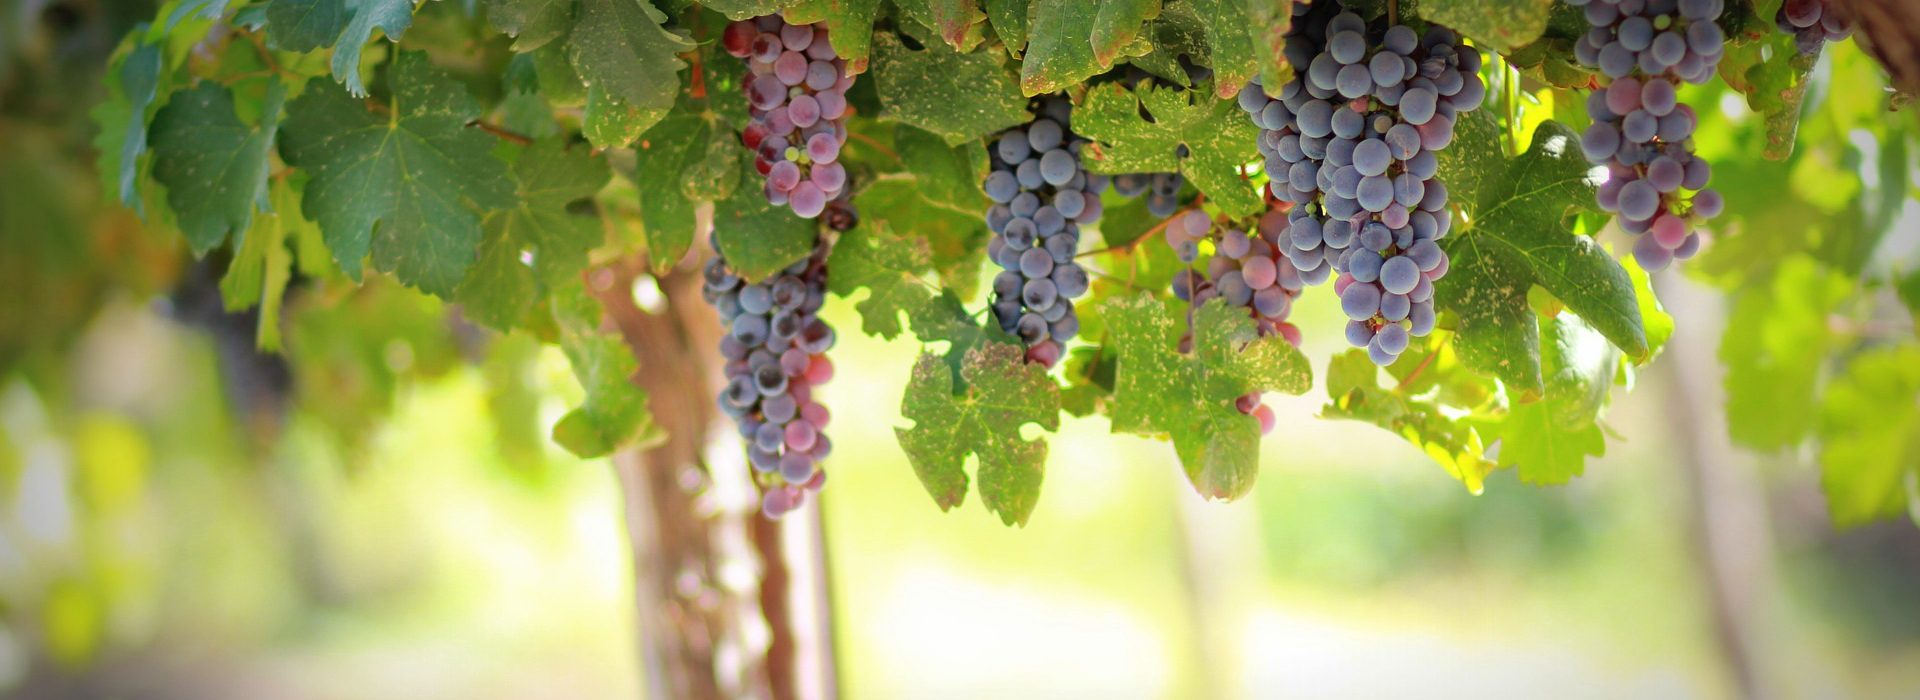 Abide in me, and I in you. As the branch cannot bear fruit of itself, except it abide in the vine; no more can ye, except ye abide in me.